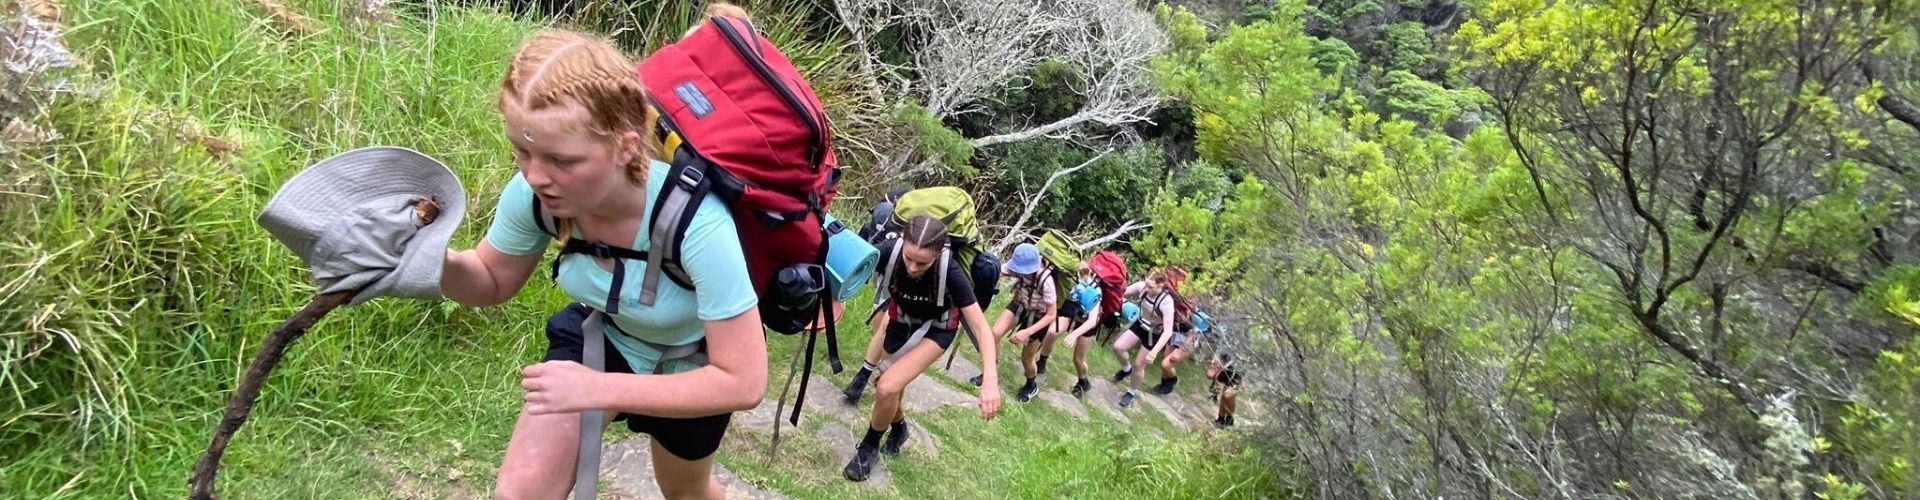 Adventure Plus group reach the top of steep bush trail